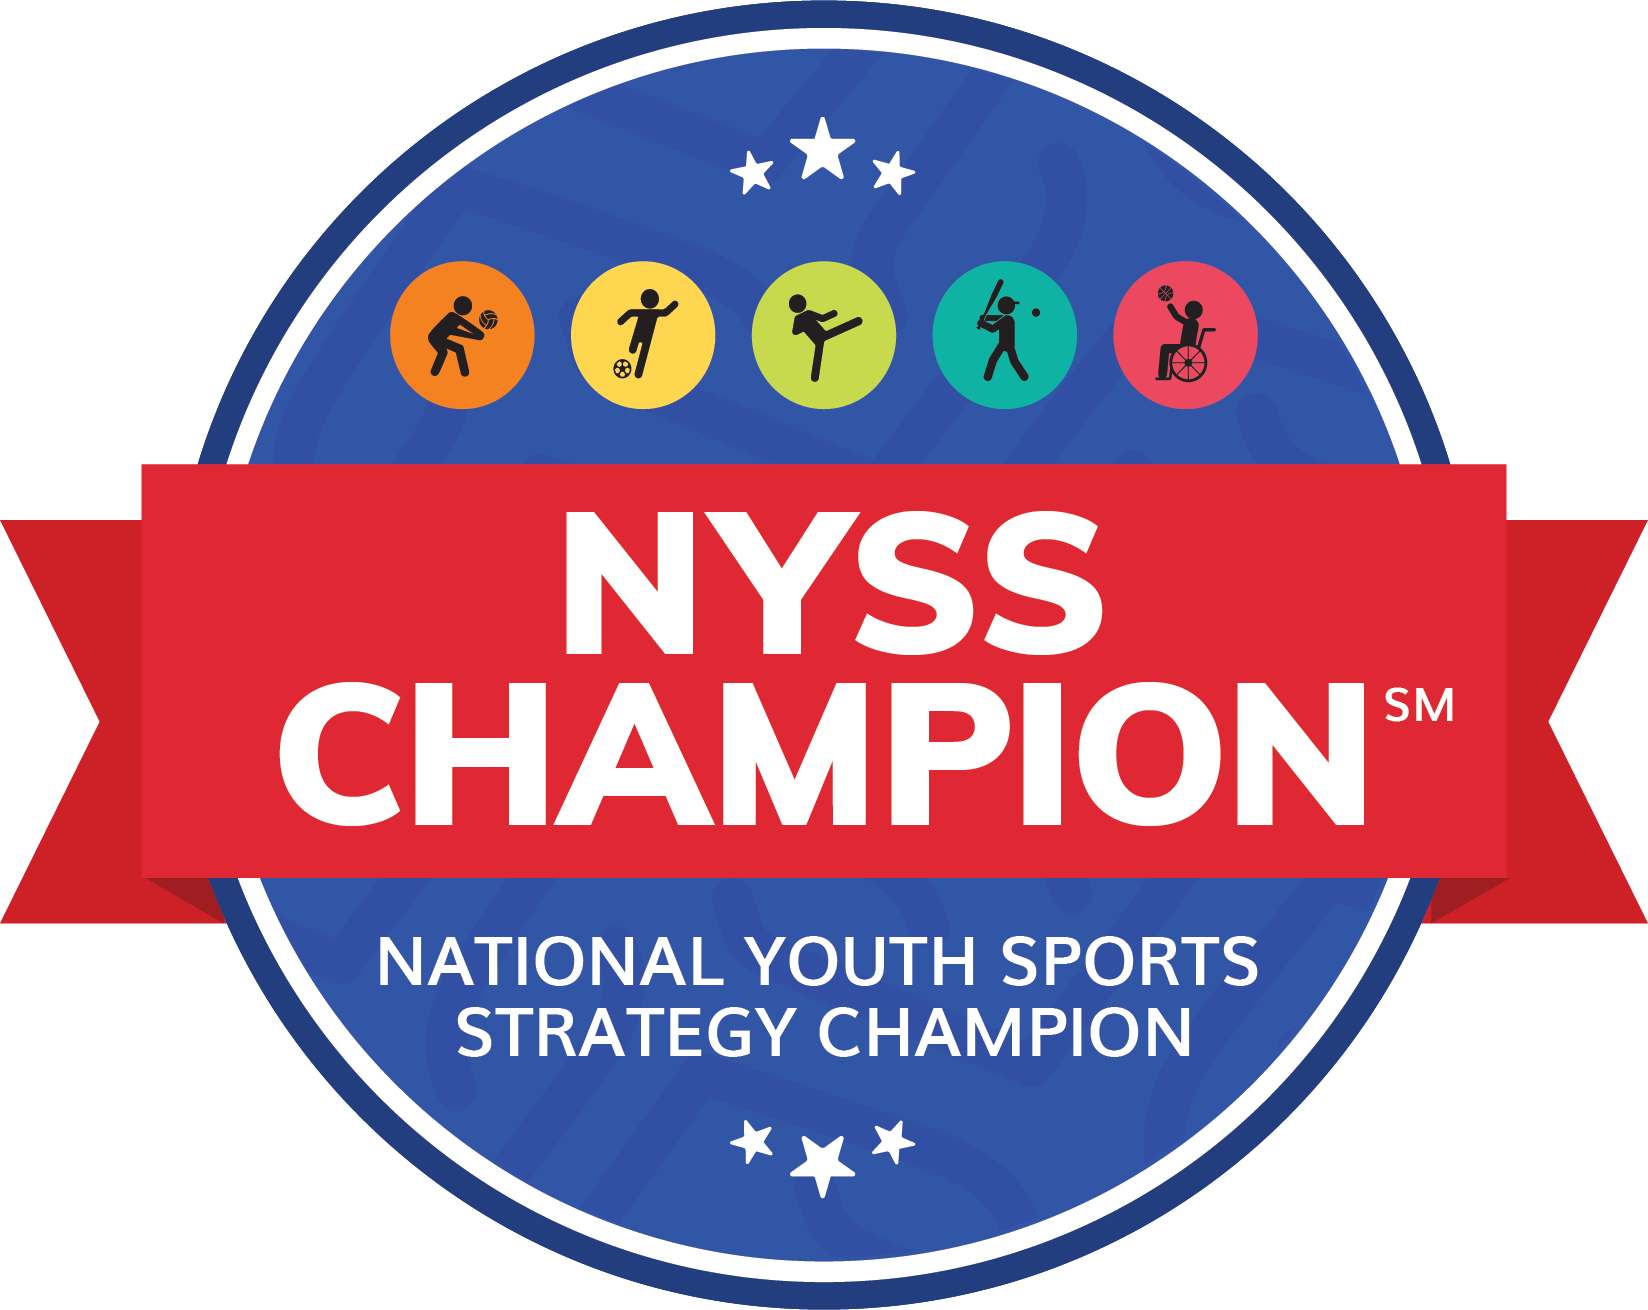 Official National Youth Sport Strategy (NYSS) Champion